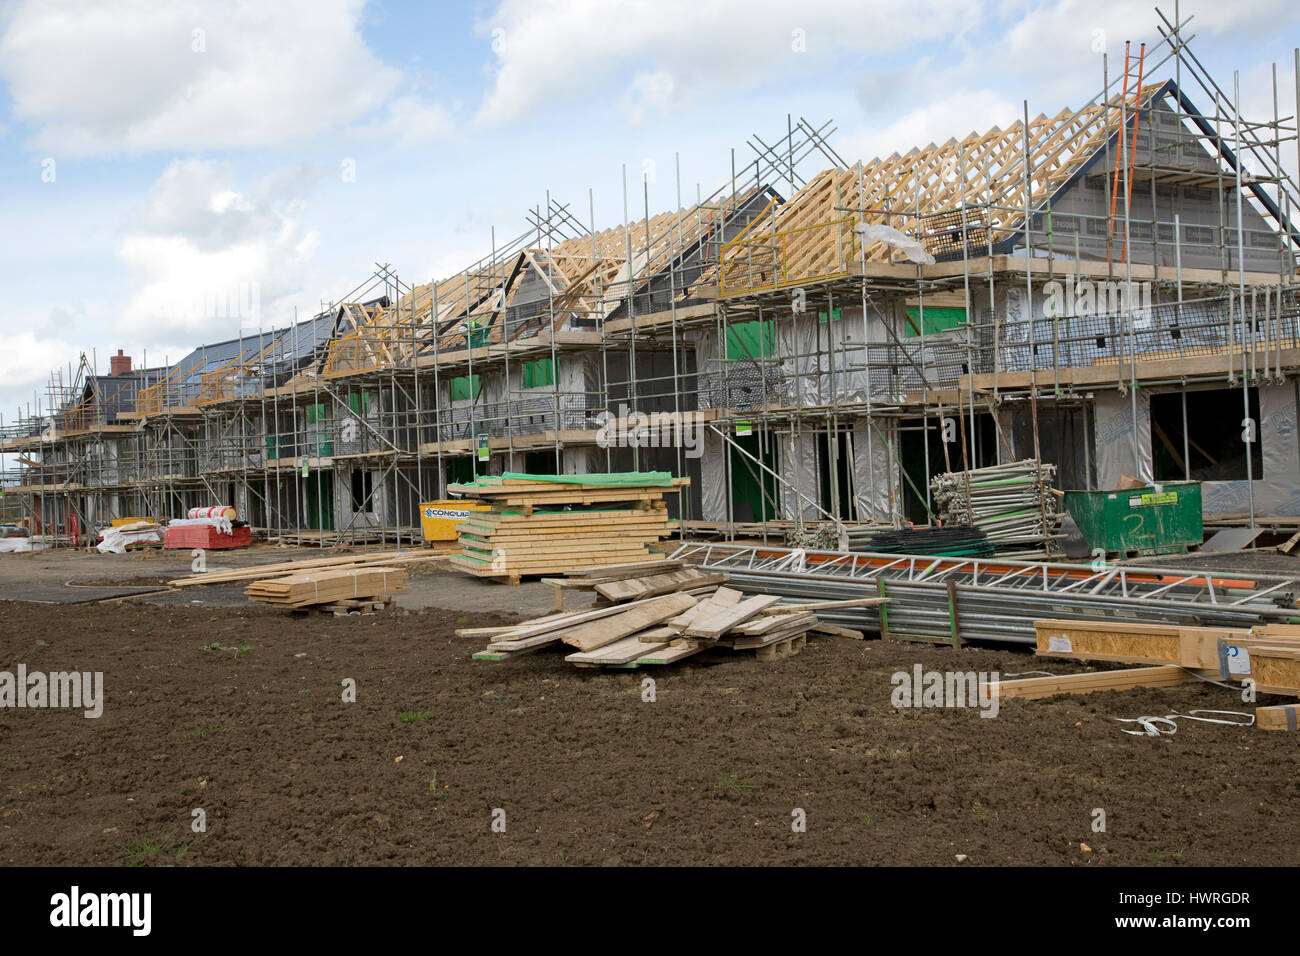 Building new contemporary houses with solar panels Persimmon Greenacres Bishops Cleeve Cheltenham UK - Stock Image